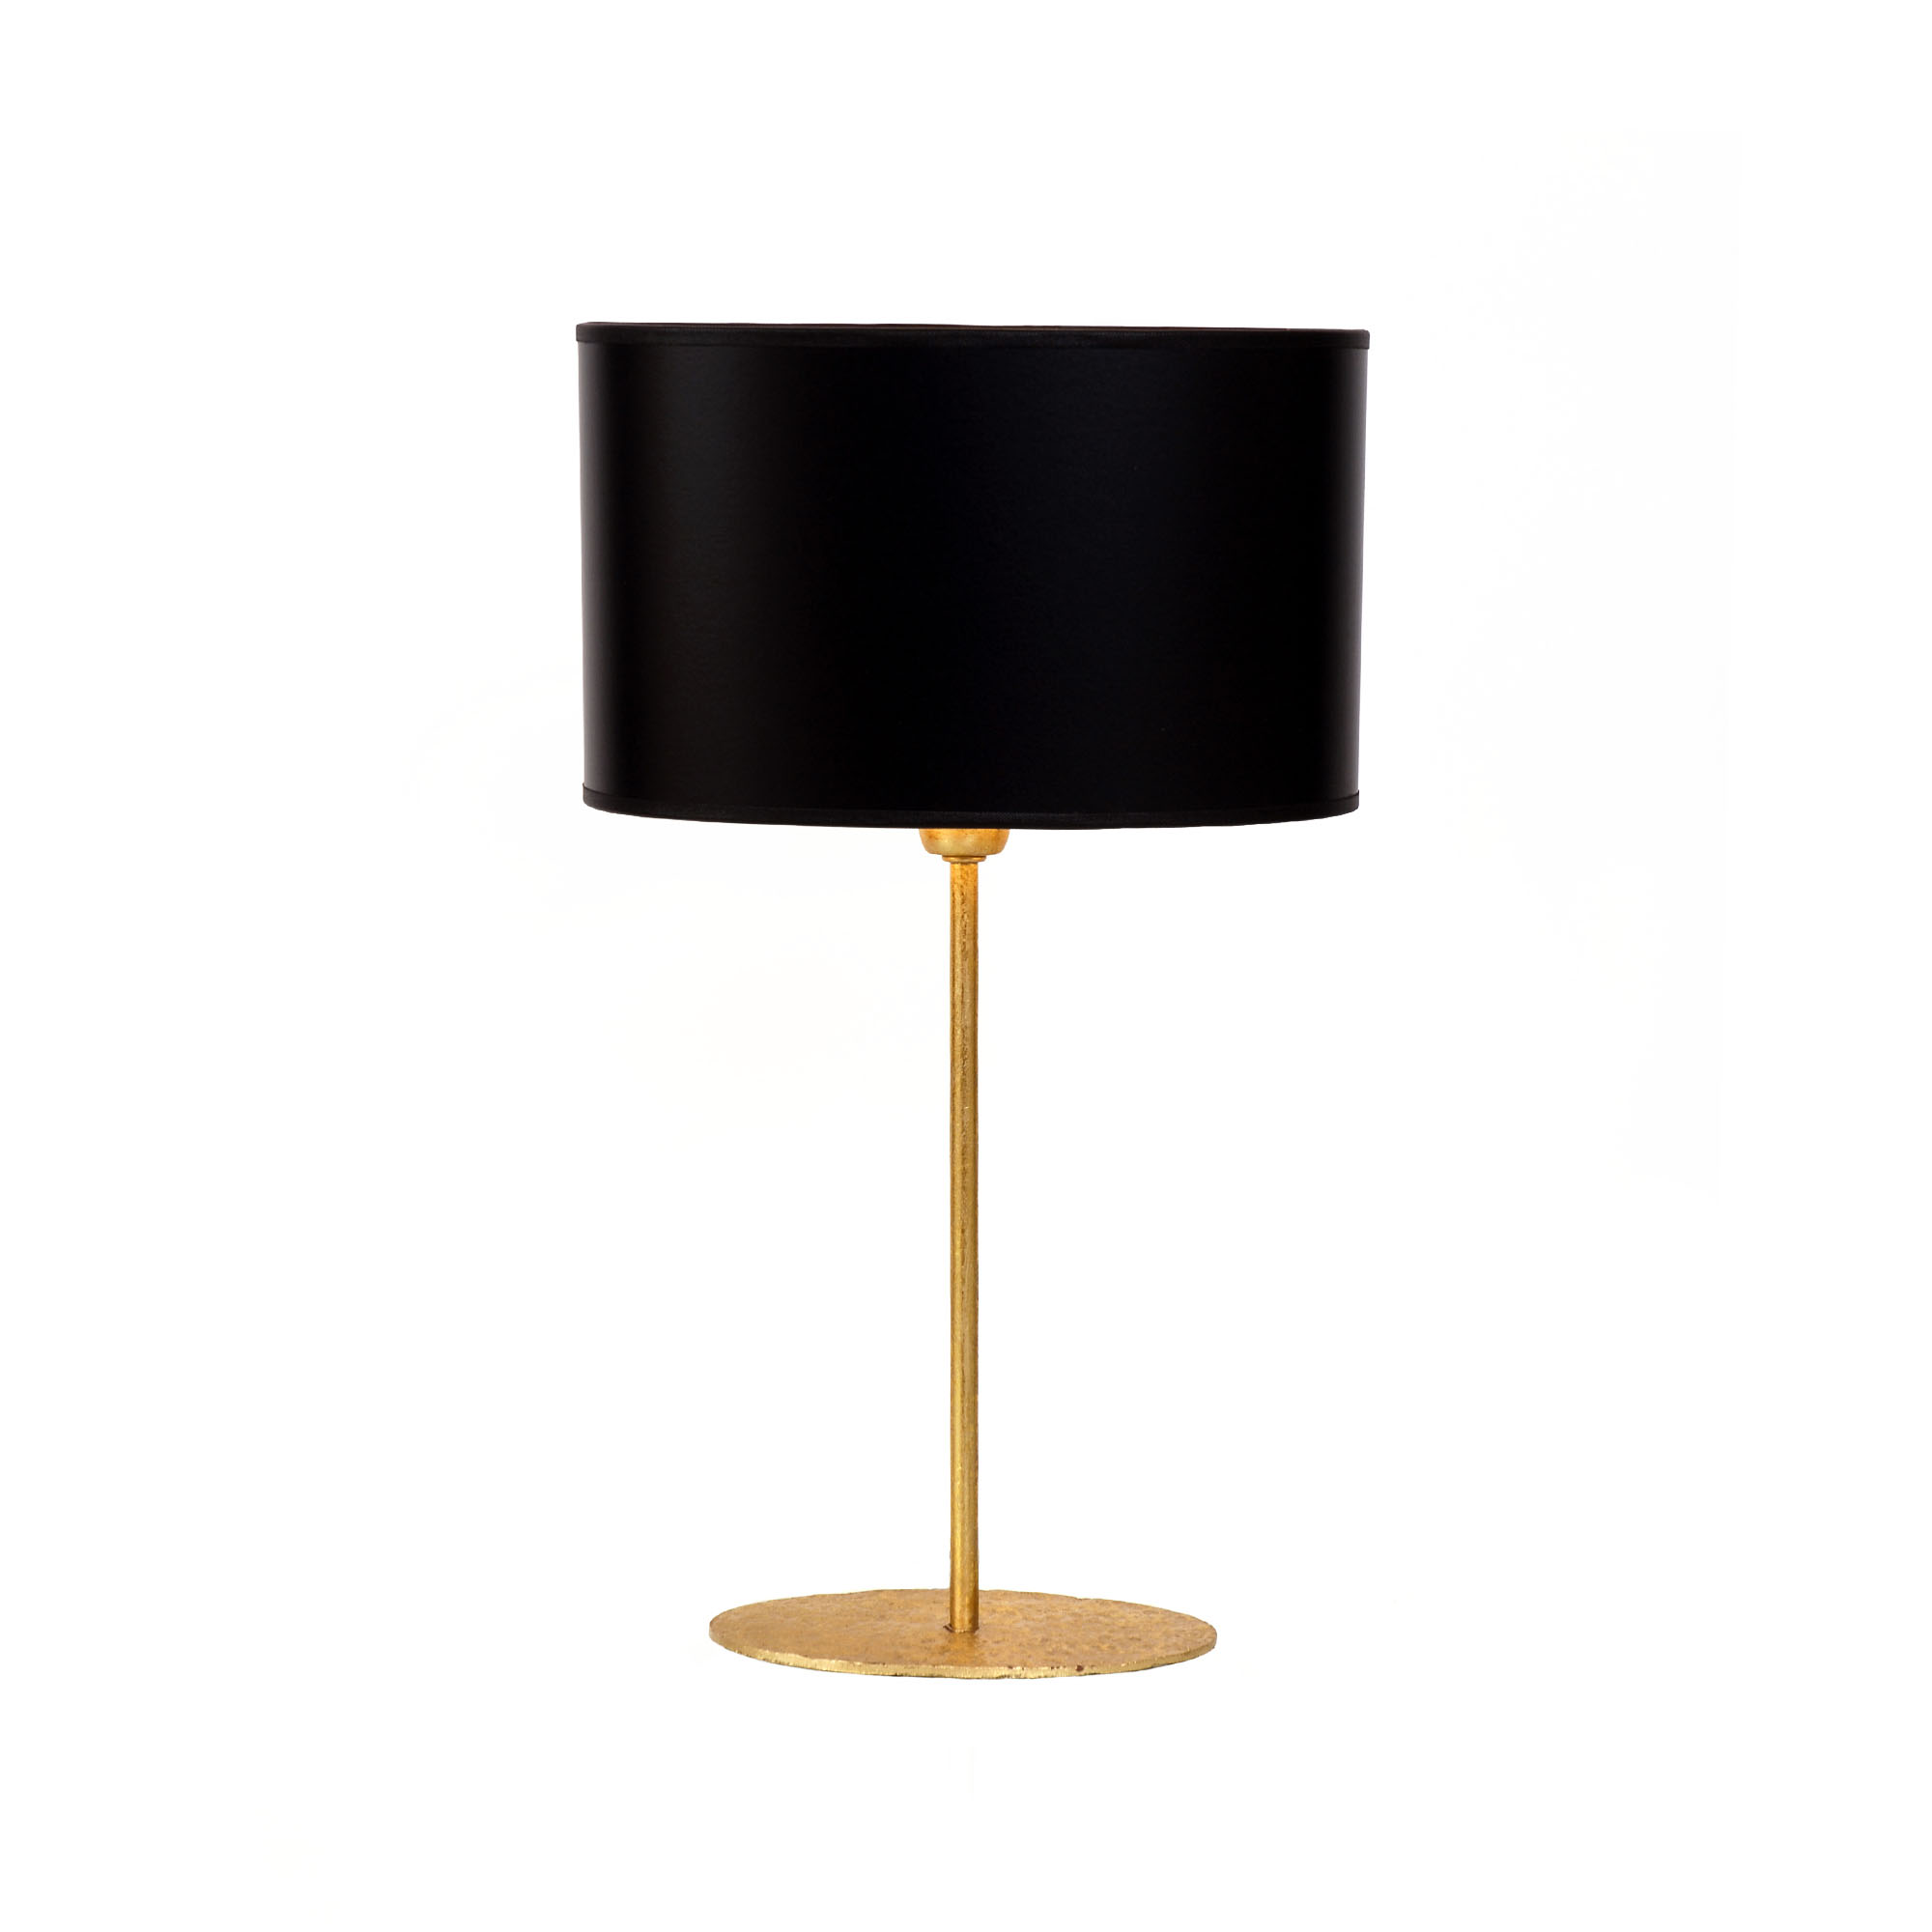 lampe schwarz gold h ngelampe golden art schwarz gold weihnachtsgeschenke von luxodo flair. Black Bedroom Furniture Sets. Home Design Ideas